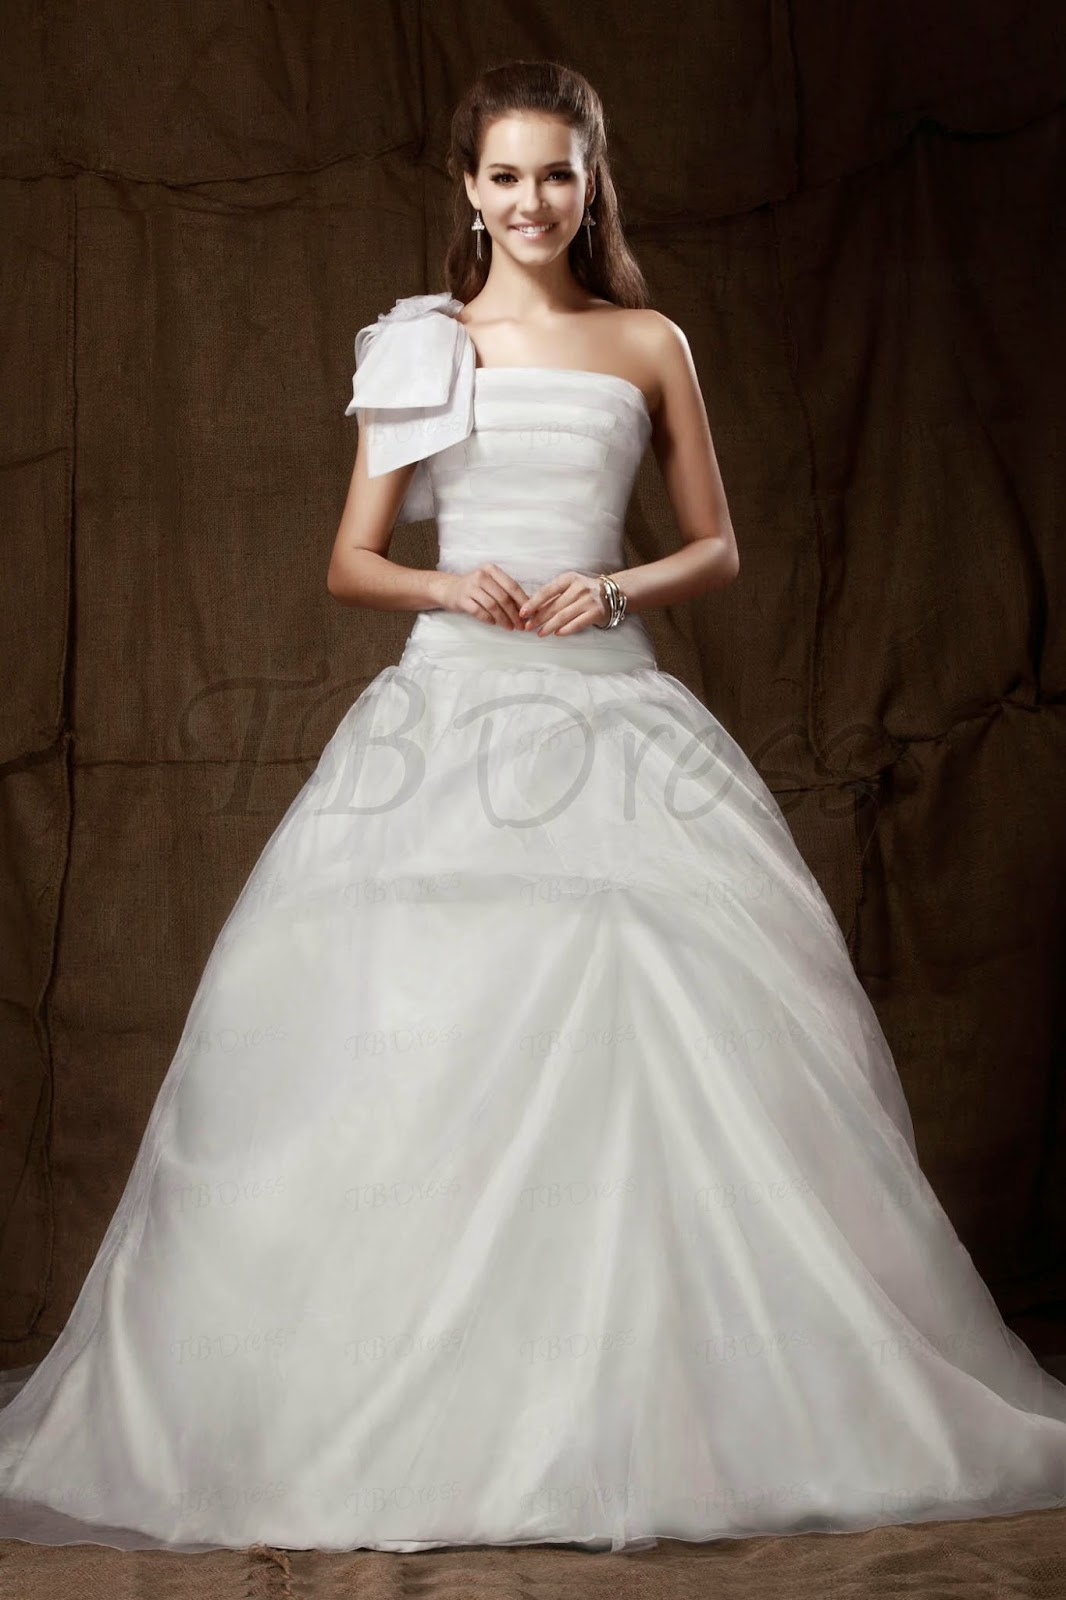 http://www.tbdress.com/product/Noble-A-Line-One-Shoulder-Floor-Length-Sandras-Prom-Ball-Gown-Dress-9673889.html